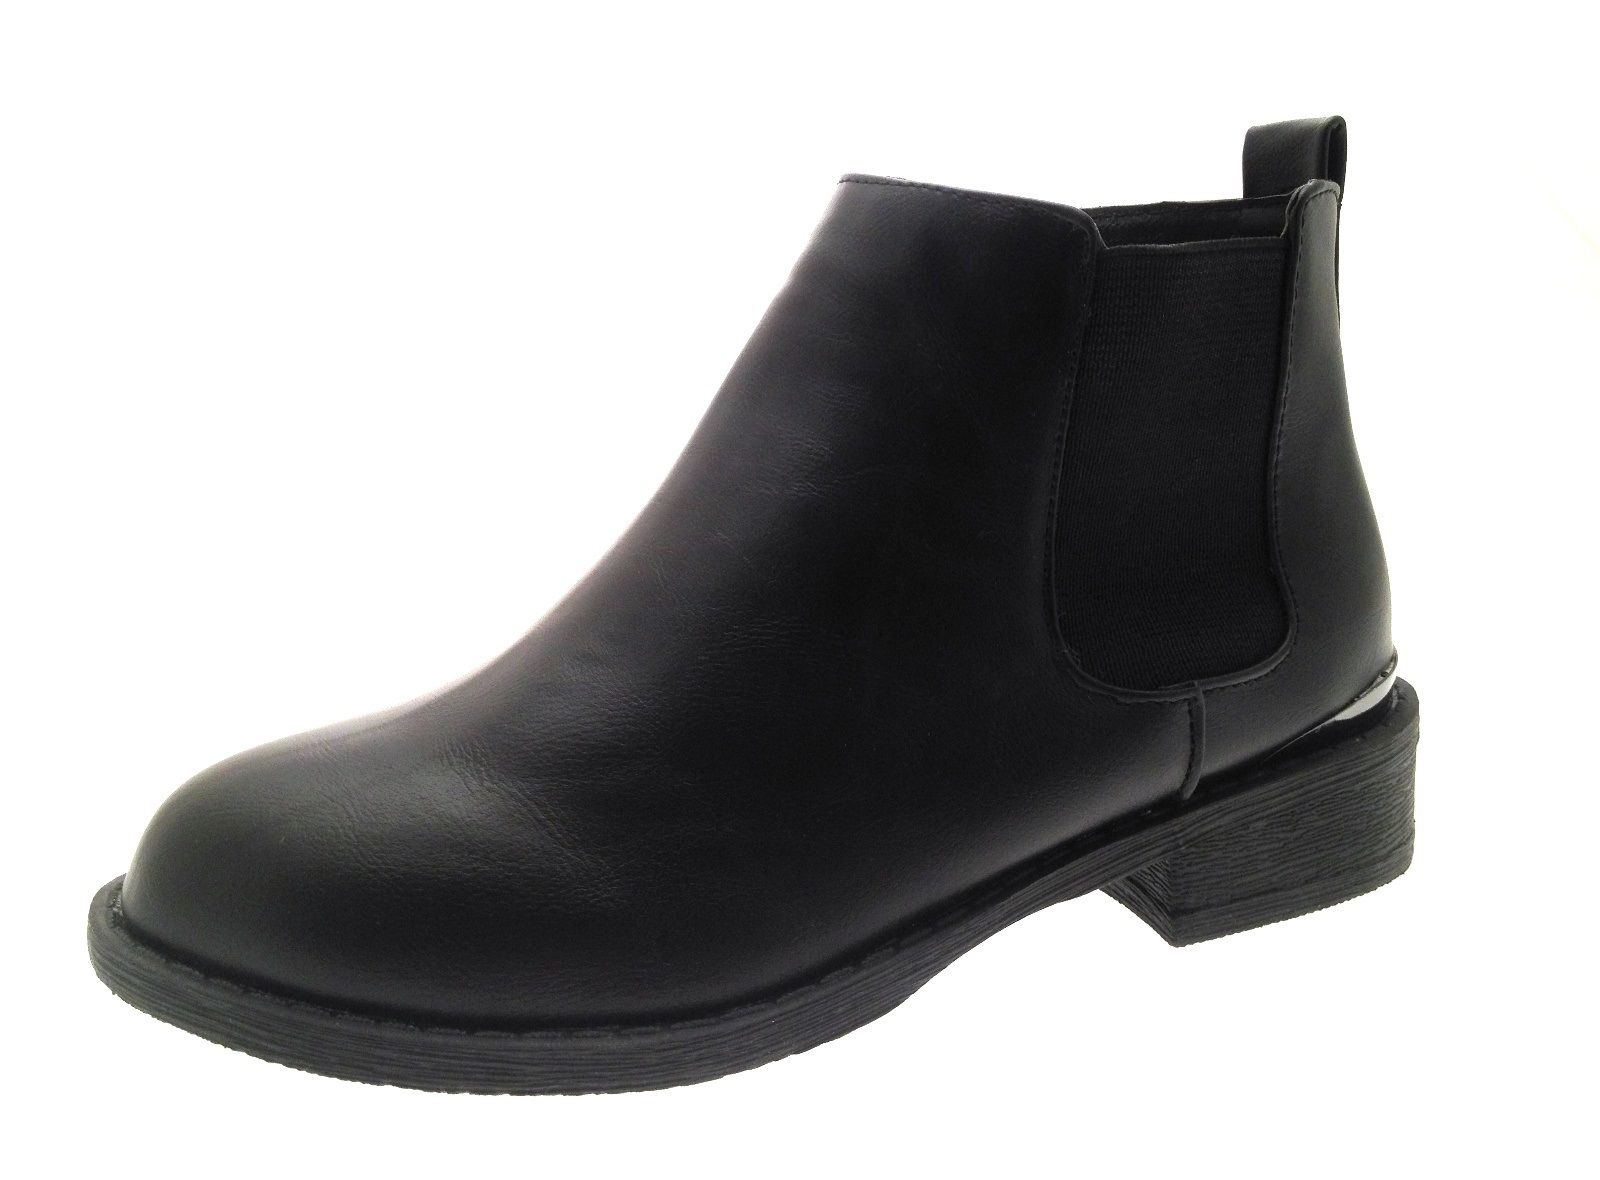 Girls' Black Ankle Boots. Clothing. Shoes. Girls' Black Ankle Boots. Showing 48 of results that match your query. Search Product Result. Product - L'Amour Girls Black Star Cut Out Leather Lined Ankle Boots Kids. Reduced Price. Product Image. Price $ List price $